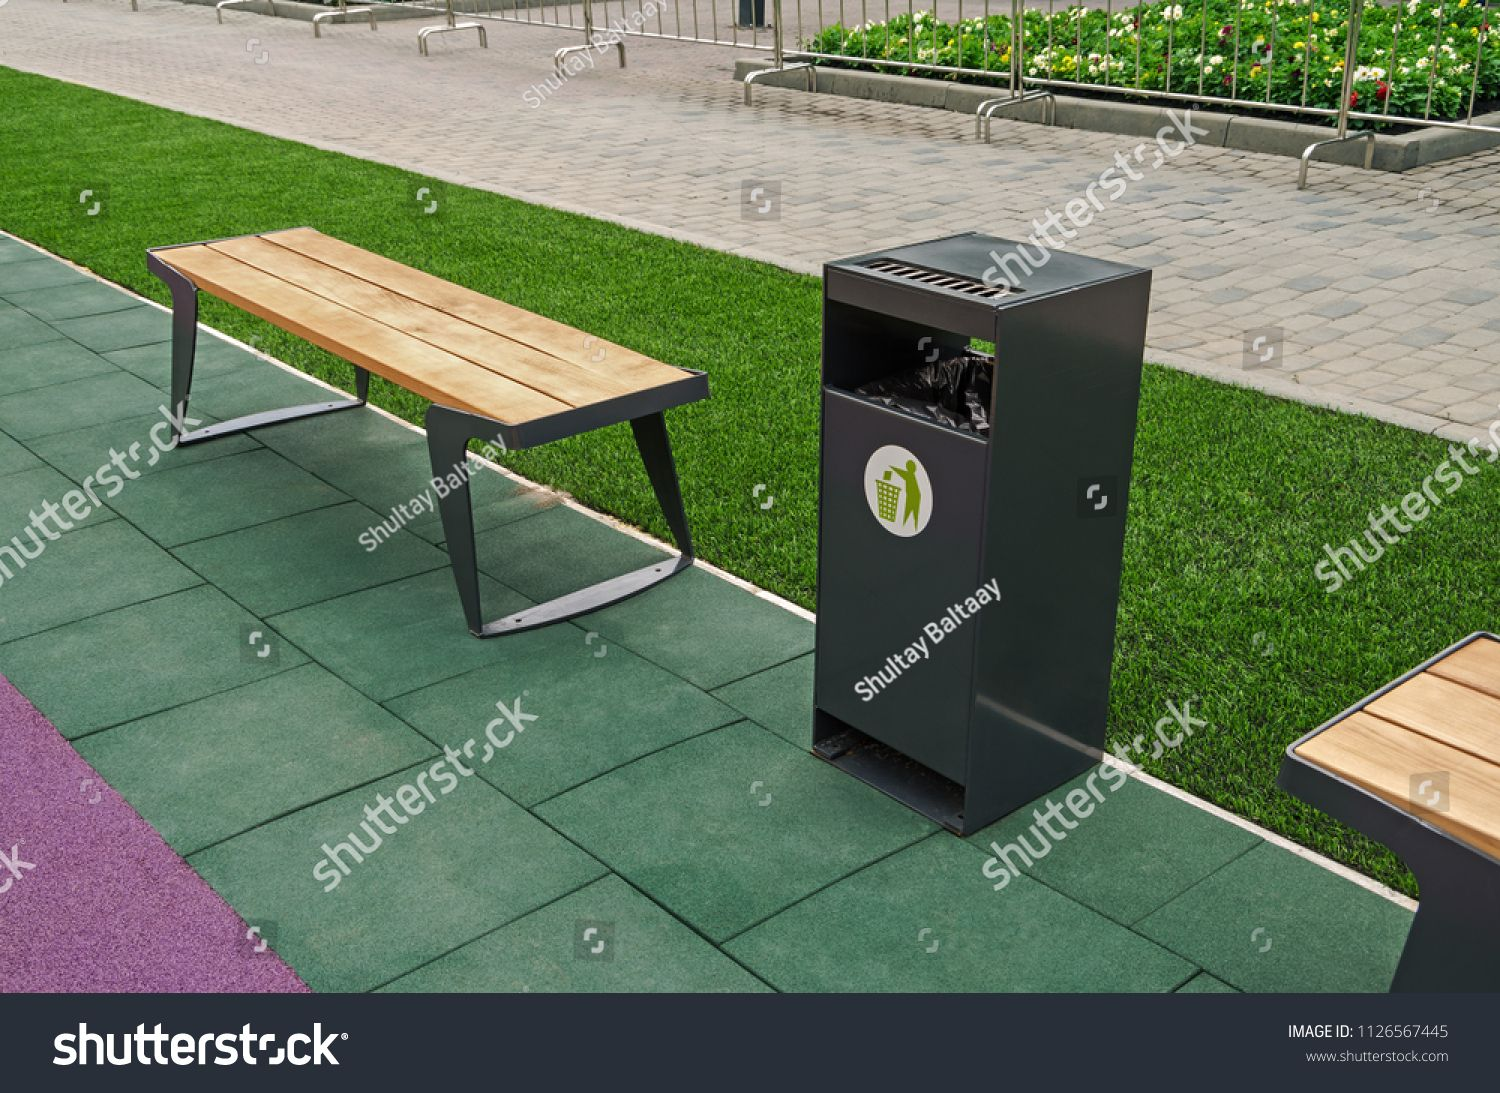 Marvelous A Wooden Bench For Rest And A Garbage Bin For Waste In A Machost Co Dining Chair Design Ideas Machostcouk